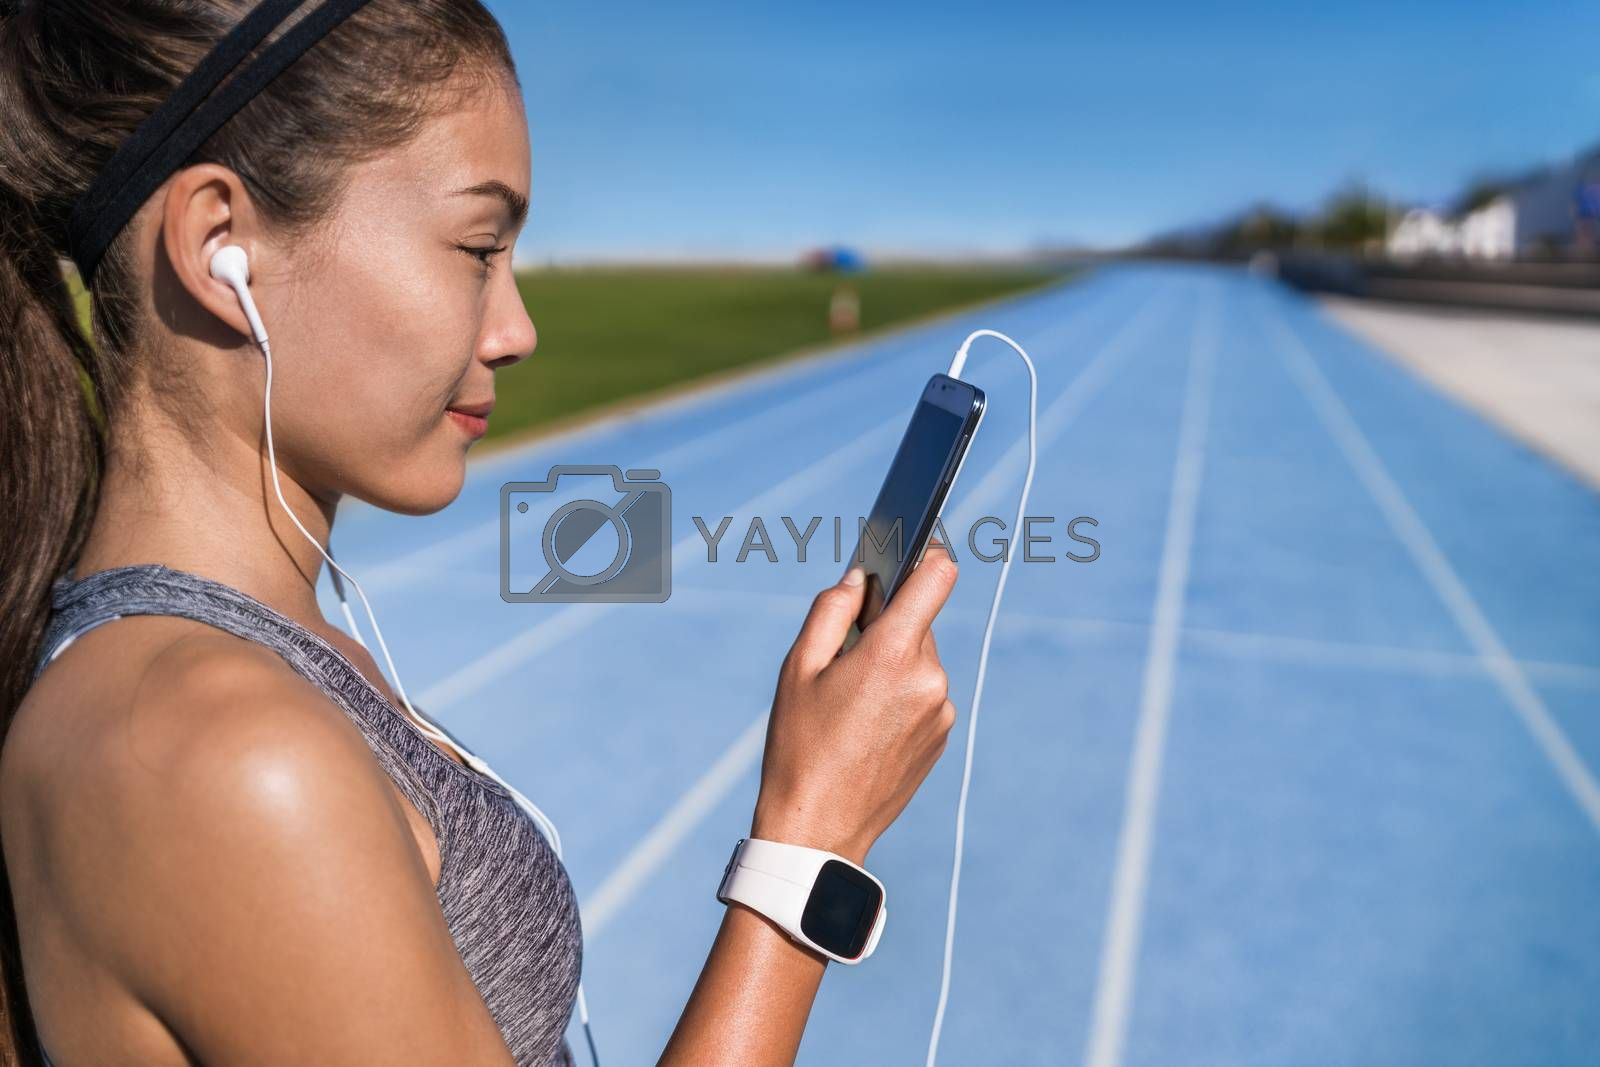 Running music motivation woman listening to phone app with headphones. Runner looking at smartphone on stadium running track with earphones and mobile phone ready to run. Healthy lifestyle by Maridav